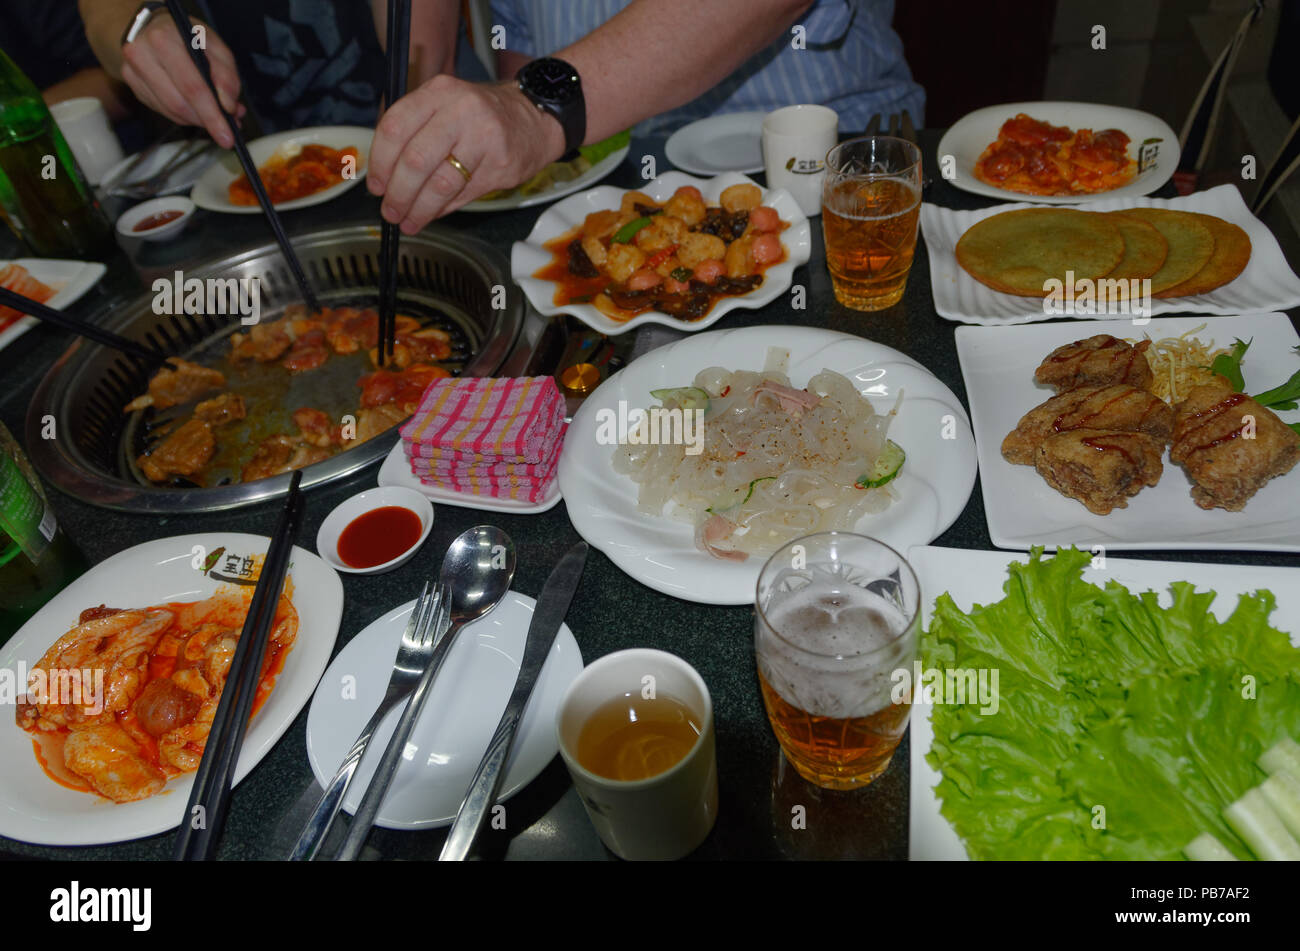 North Korean Beer Stock Photos & North Korean Beer Stock Images - Alamy